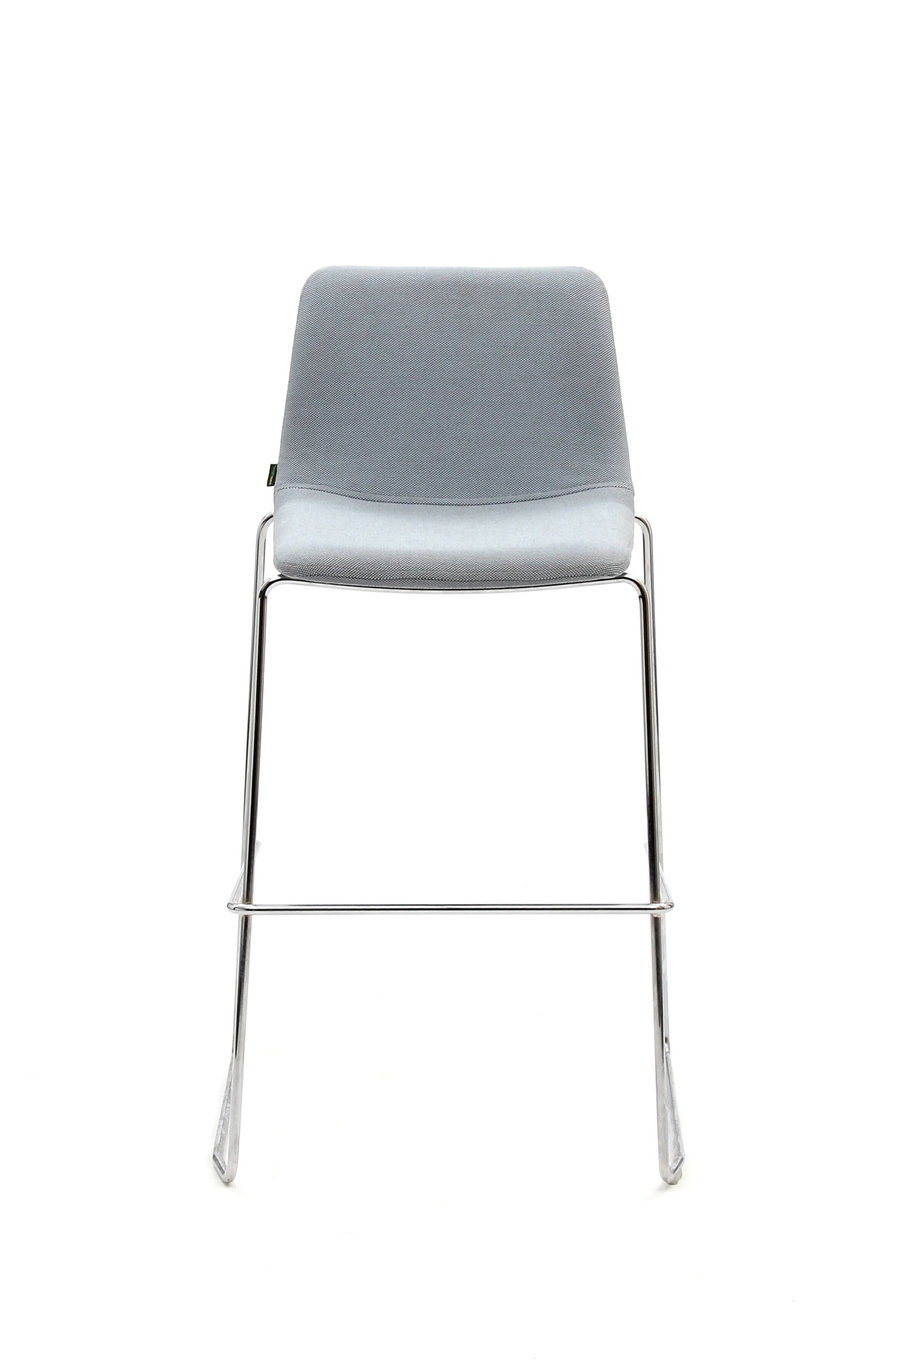 A gray naughtone Viv Stool with a metal base, viewed from the front.